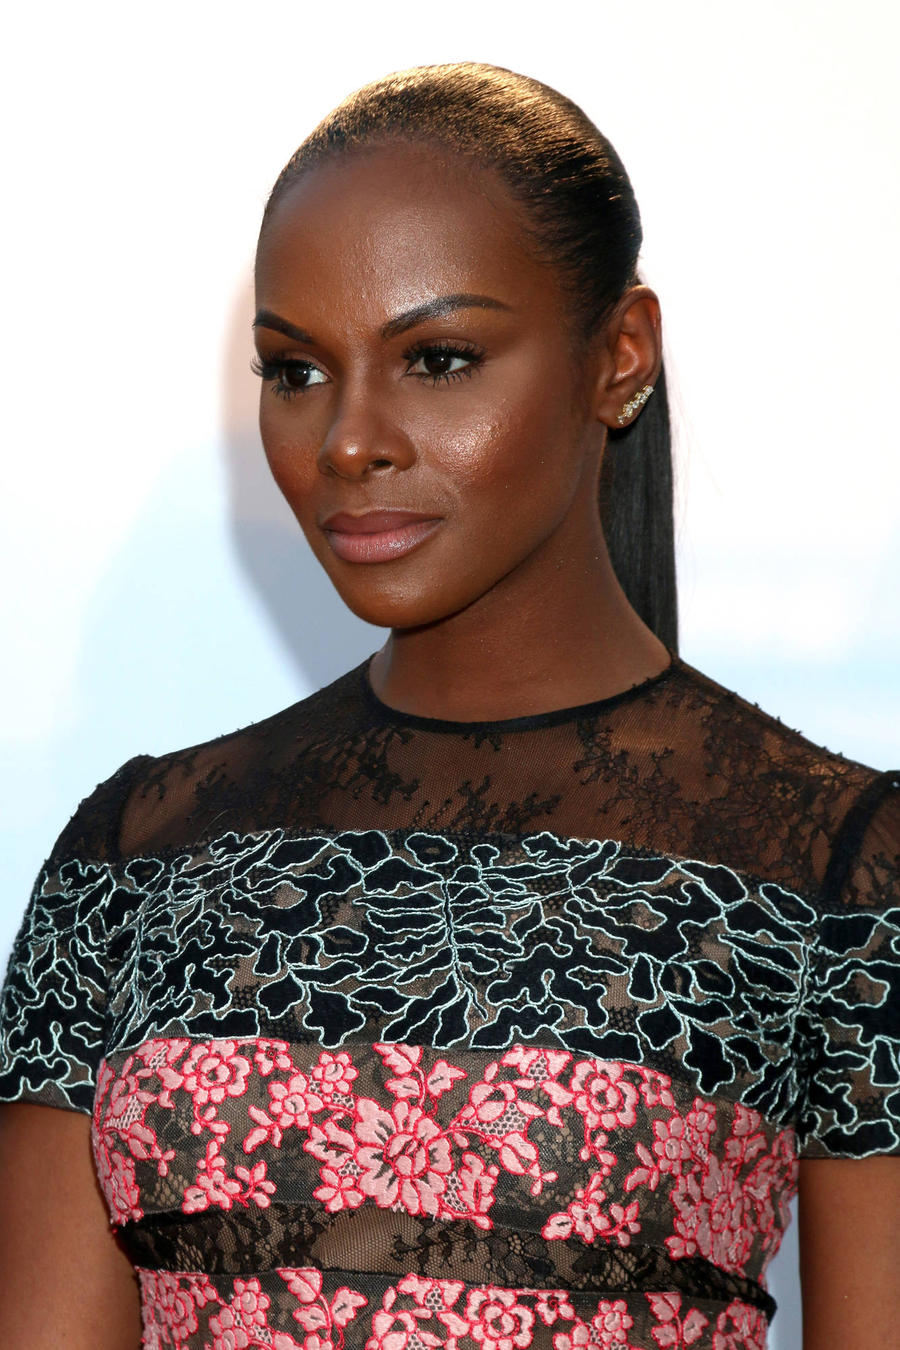 Tika Sumpter Won't Be Rushing To Wed After Baby